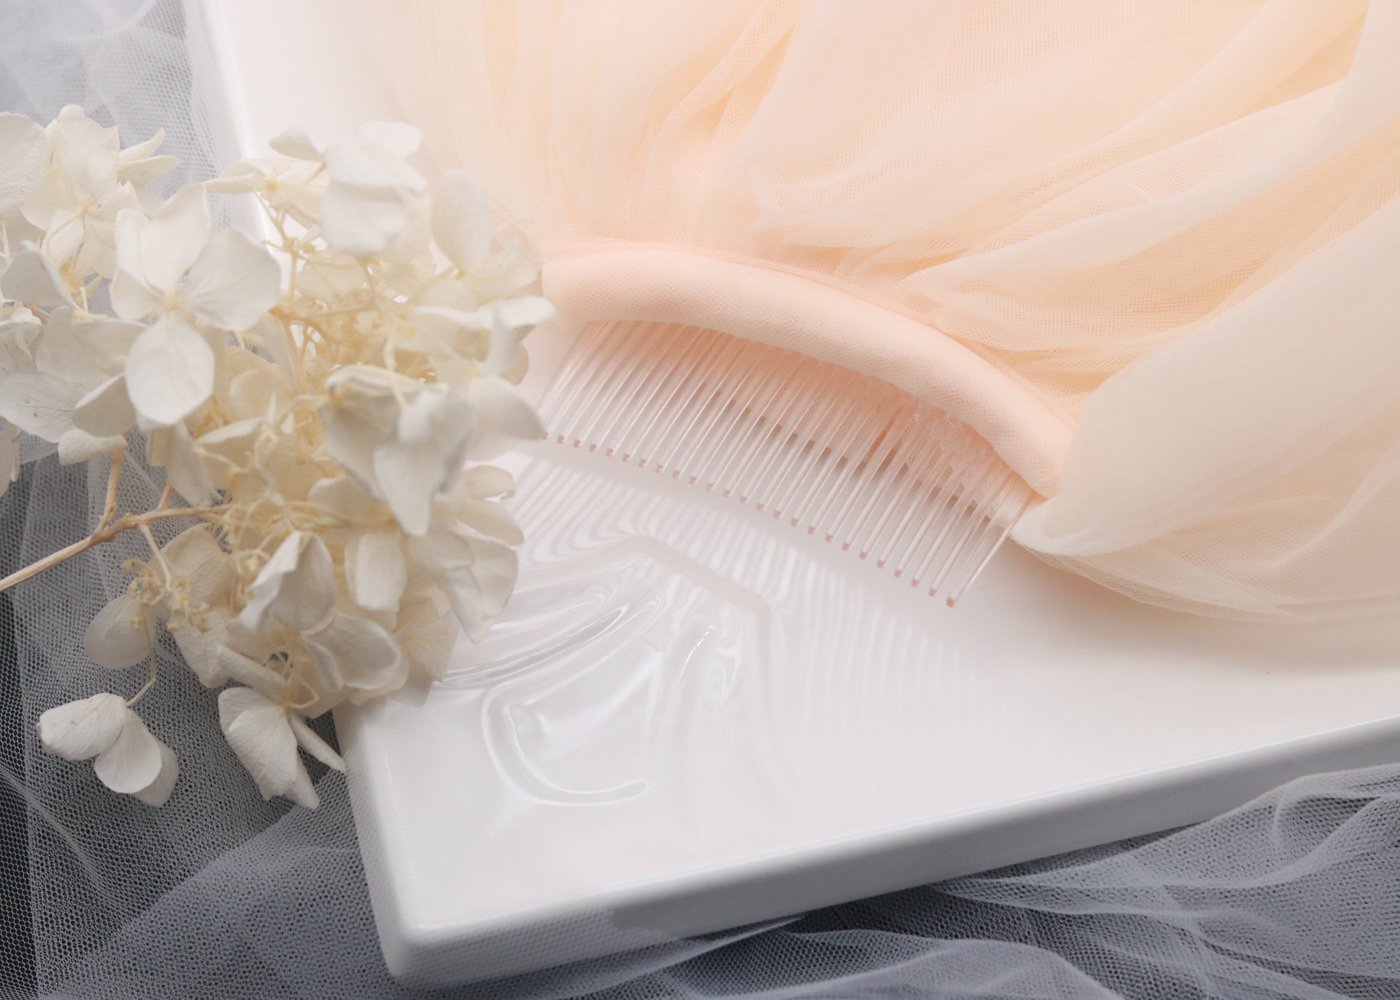 Champagne Kercisbeauty Wedding Lace 4 layer White and Champagne Veil Drop Soft Tulle for Bride with Hair Comb Wide Lace Veil Chapel Veil Single Layer Veil Wedding Hair Accessories